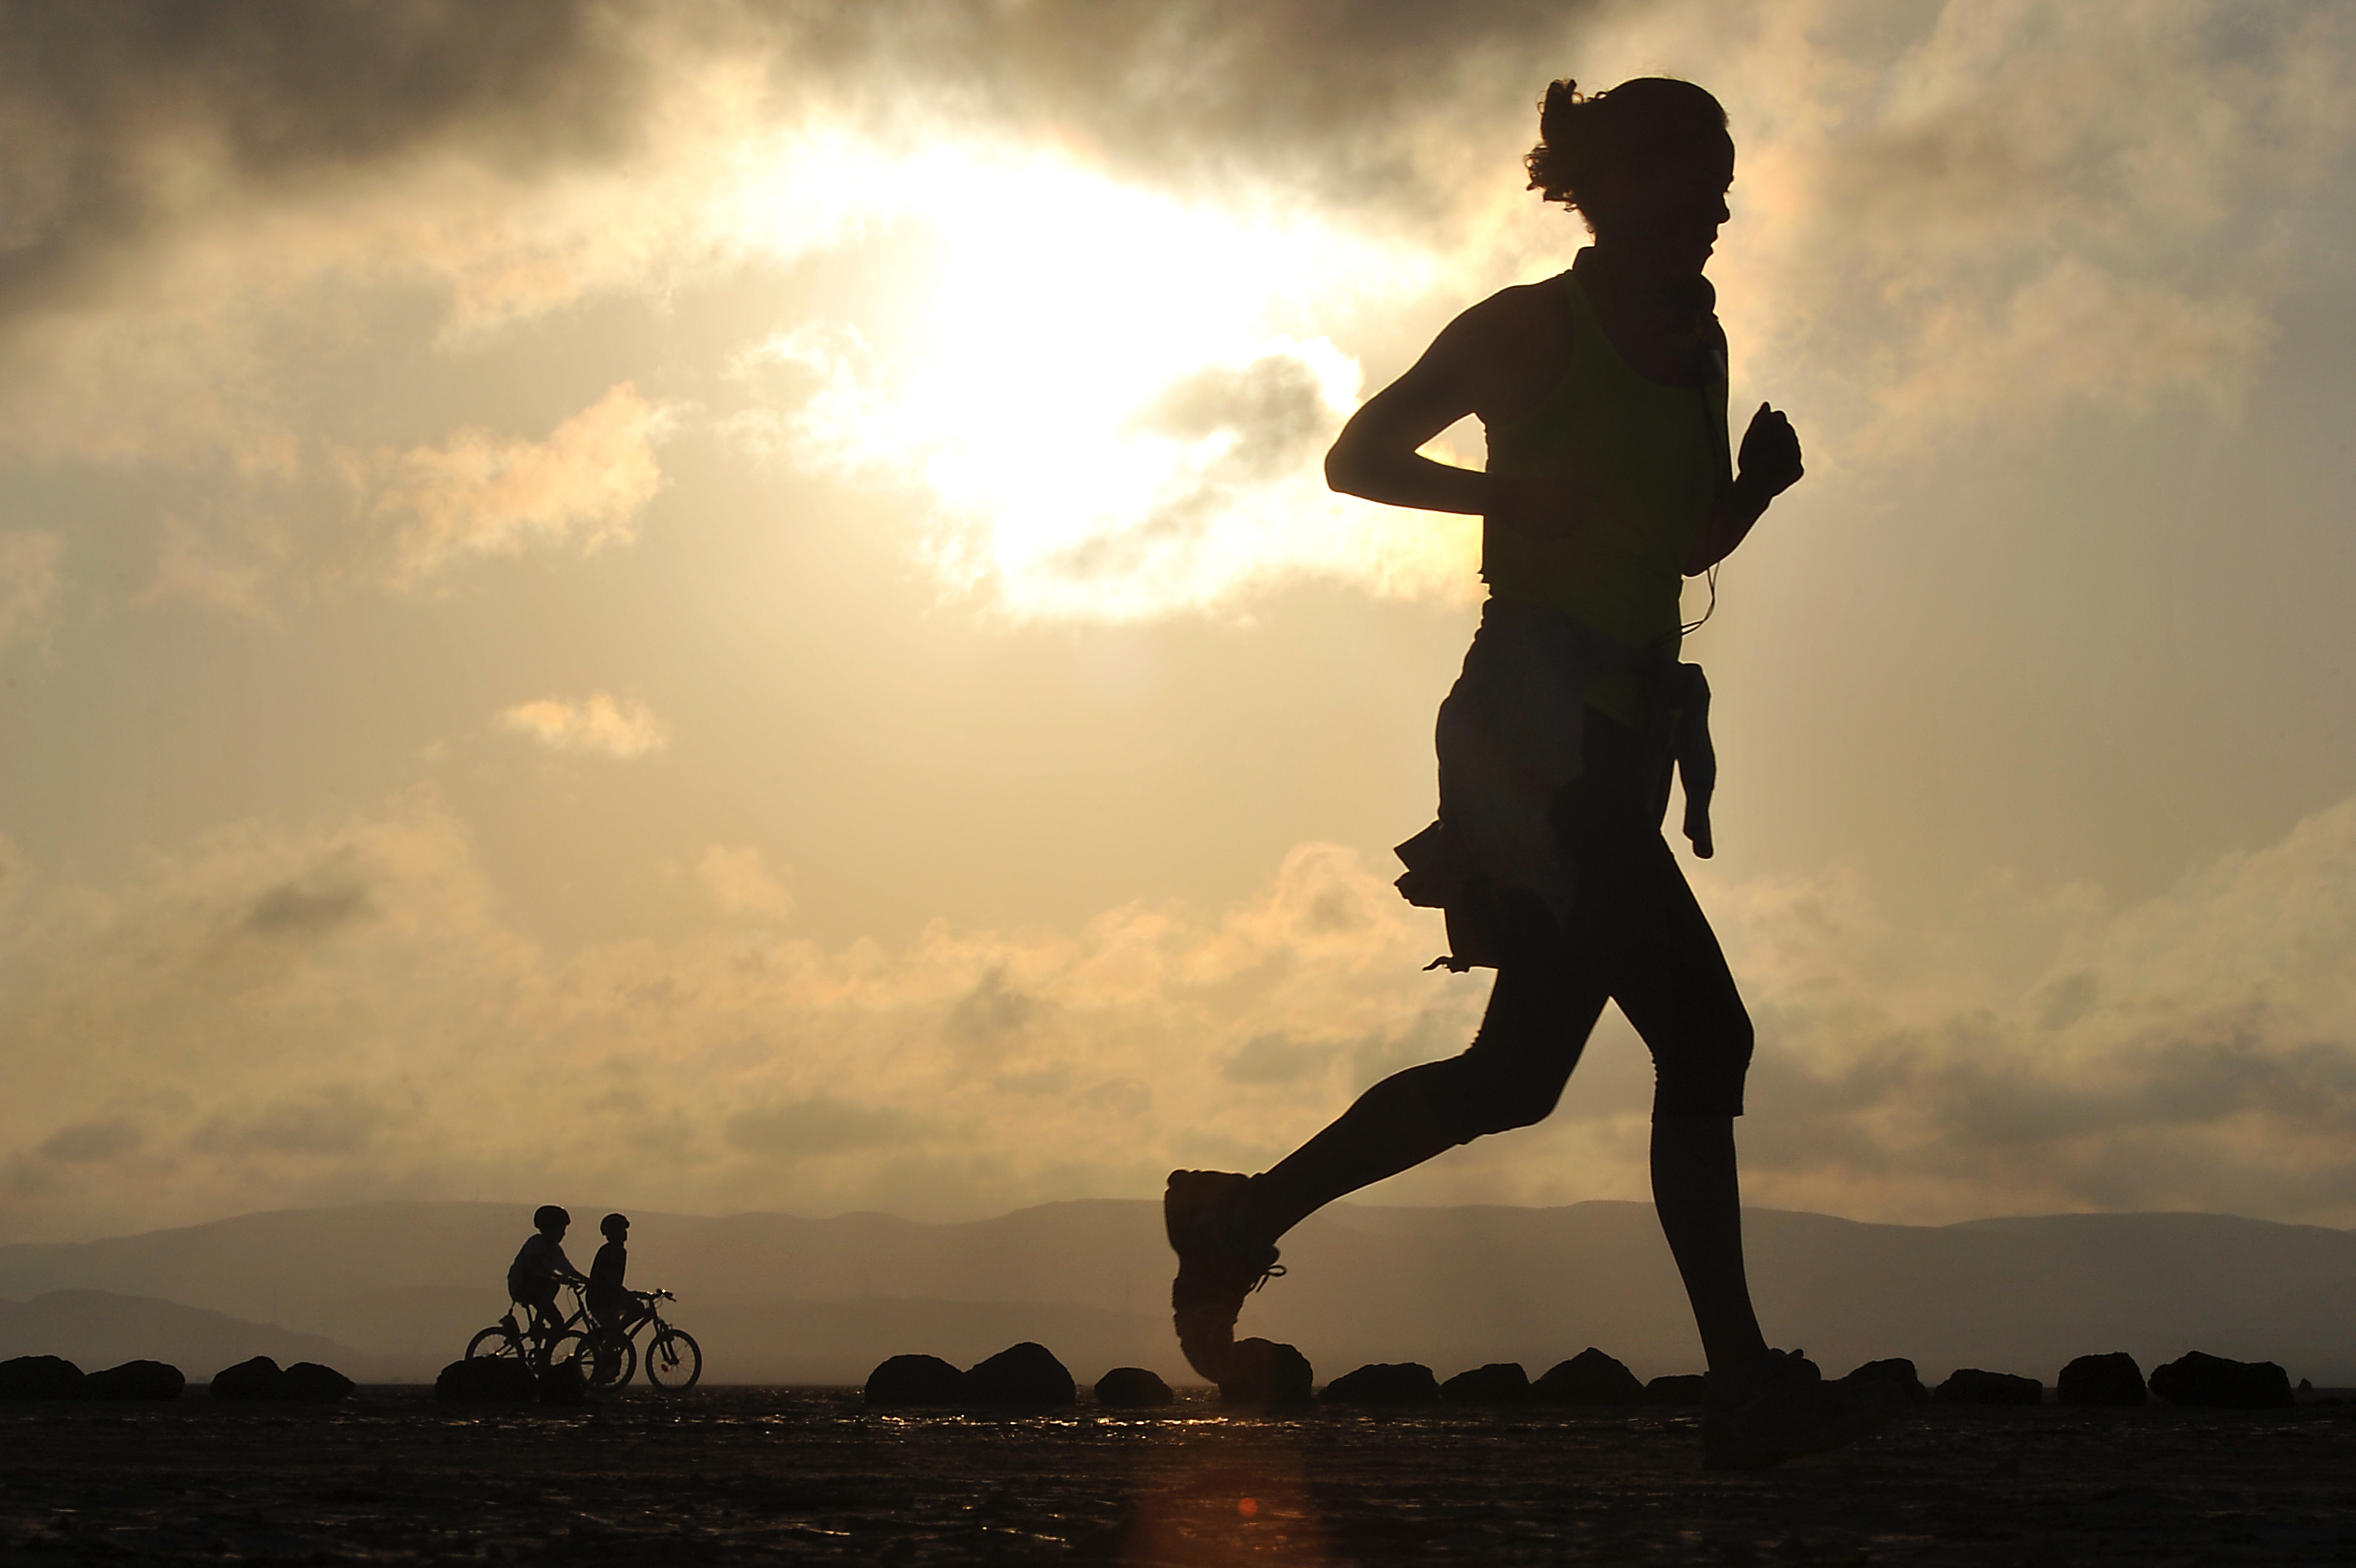 A runner makes her way across the Grand Bara Desert during the Annual Grand Bara 15K race Dec. 17, 2015, in Djibouti. More than 1,500 service members and civilians representing France, Djibouti, U.S., Japan, Germany and others participated in the race. (U.S. Air Force photo by Tech. Sgt. Dan DeCook)